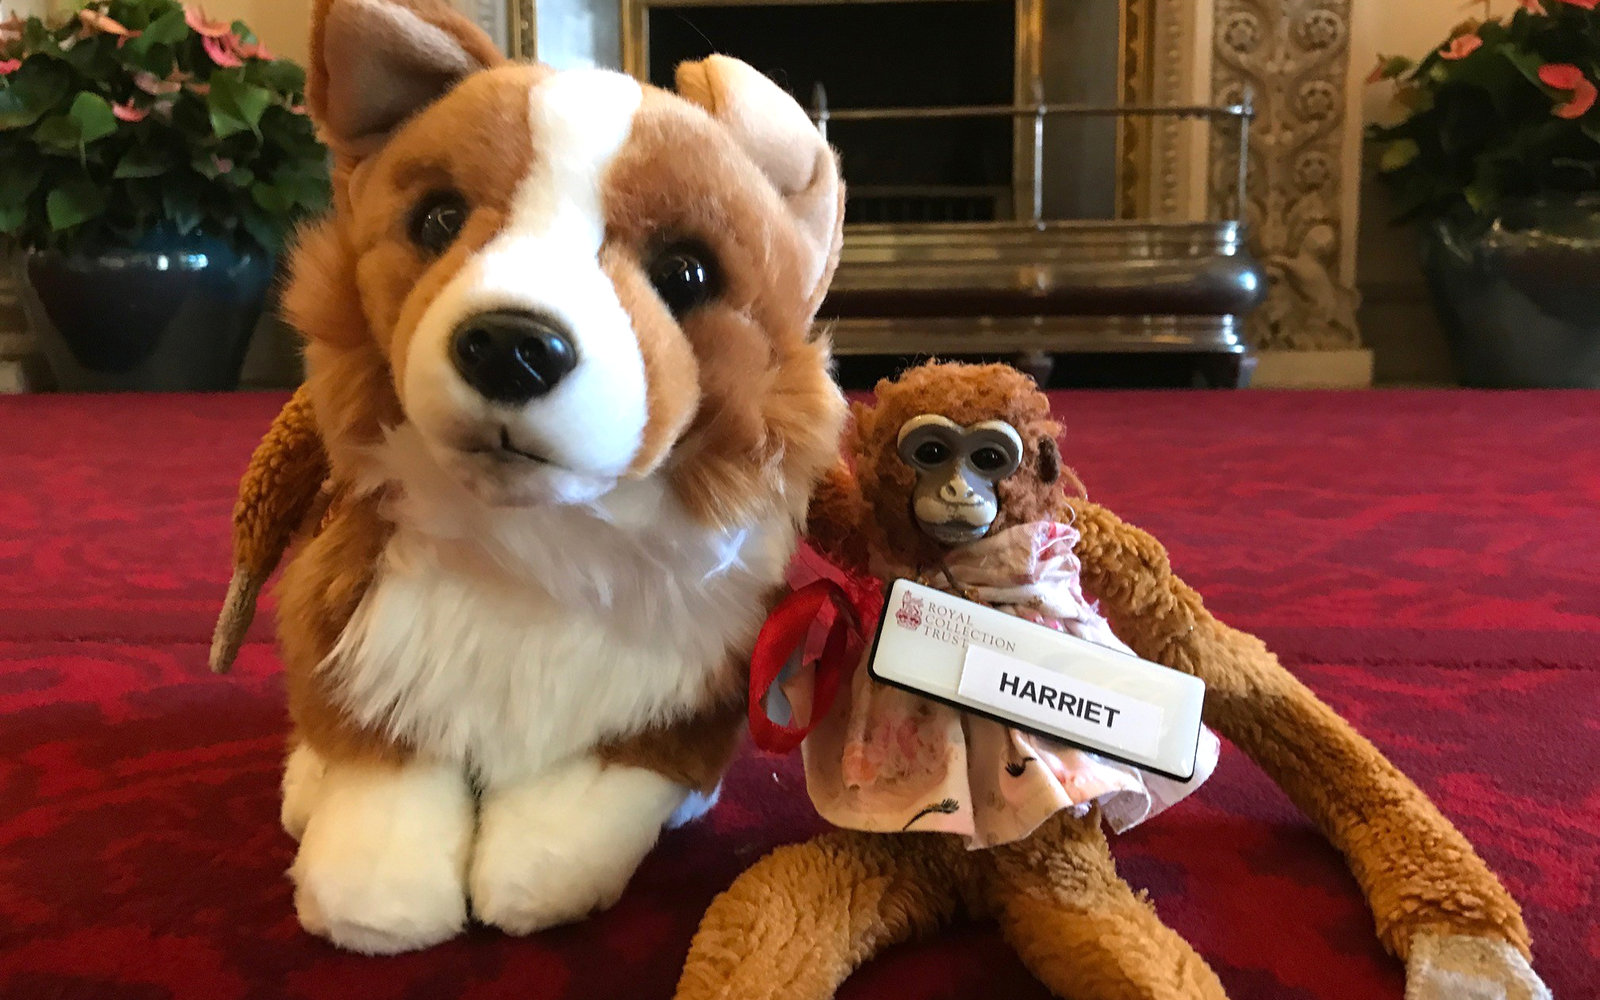 Missing Toy Monkey Found at Buckingham Palace and Returned to 5-year-old After Letter to the Queen